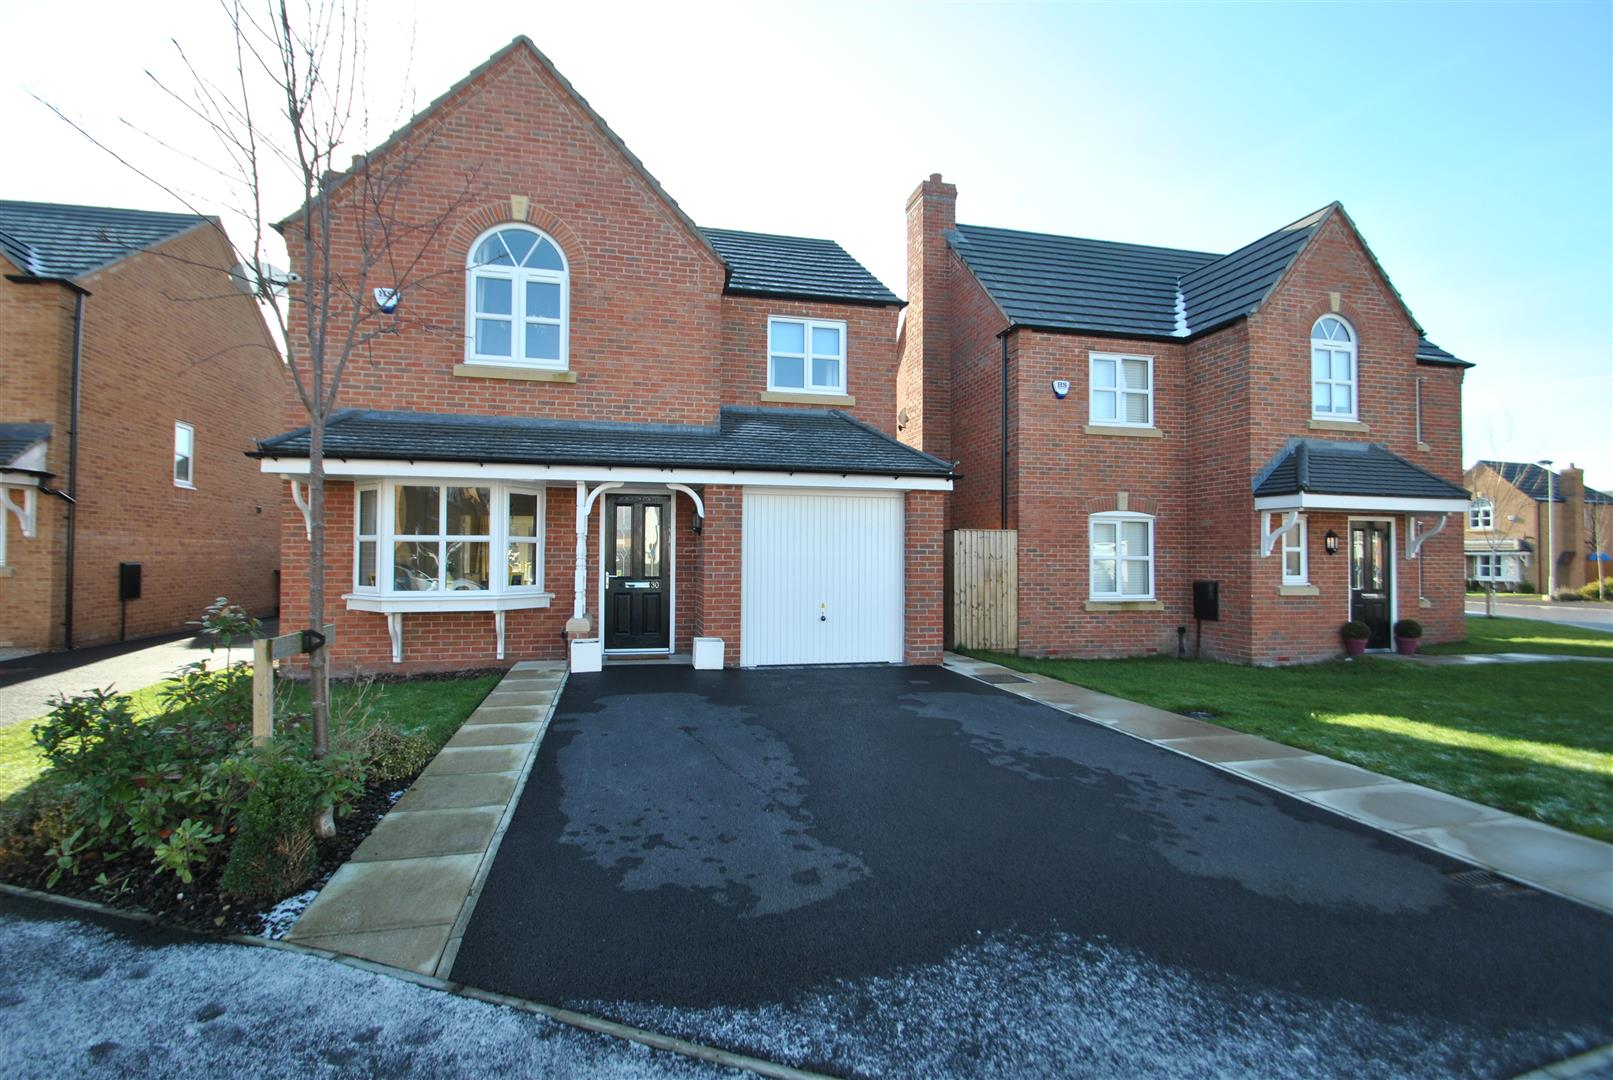 4 Bedrooms Detached House for sale in Steers Close, LATCHFORD,Warrington, WA4